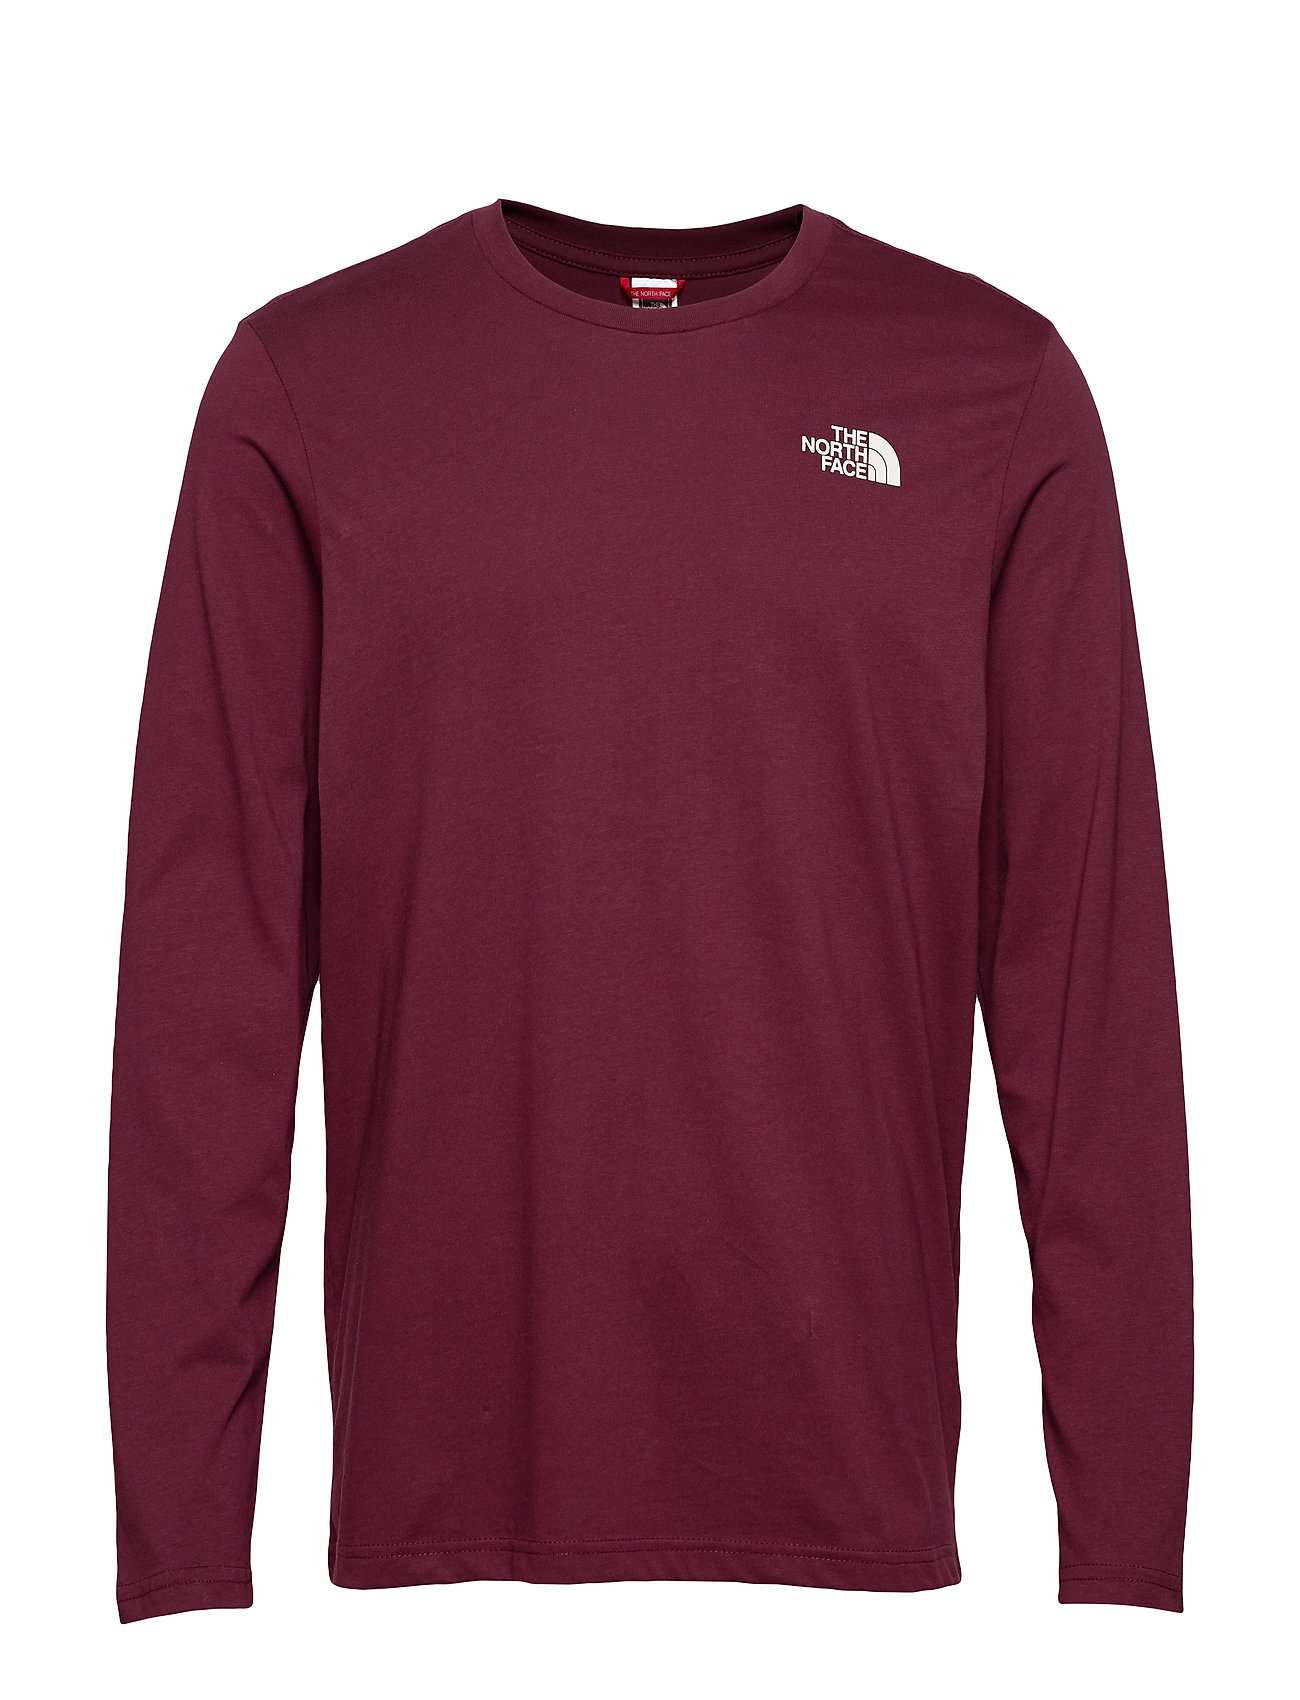 The North Face M L/S EASY TEE - DEEP GARNET RED